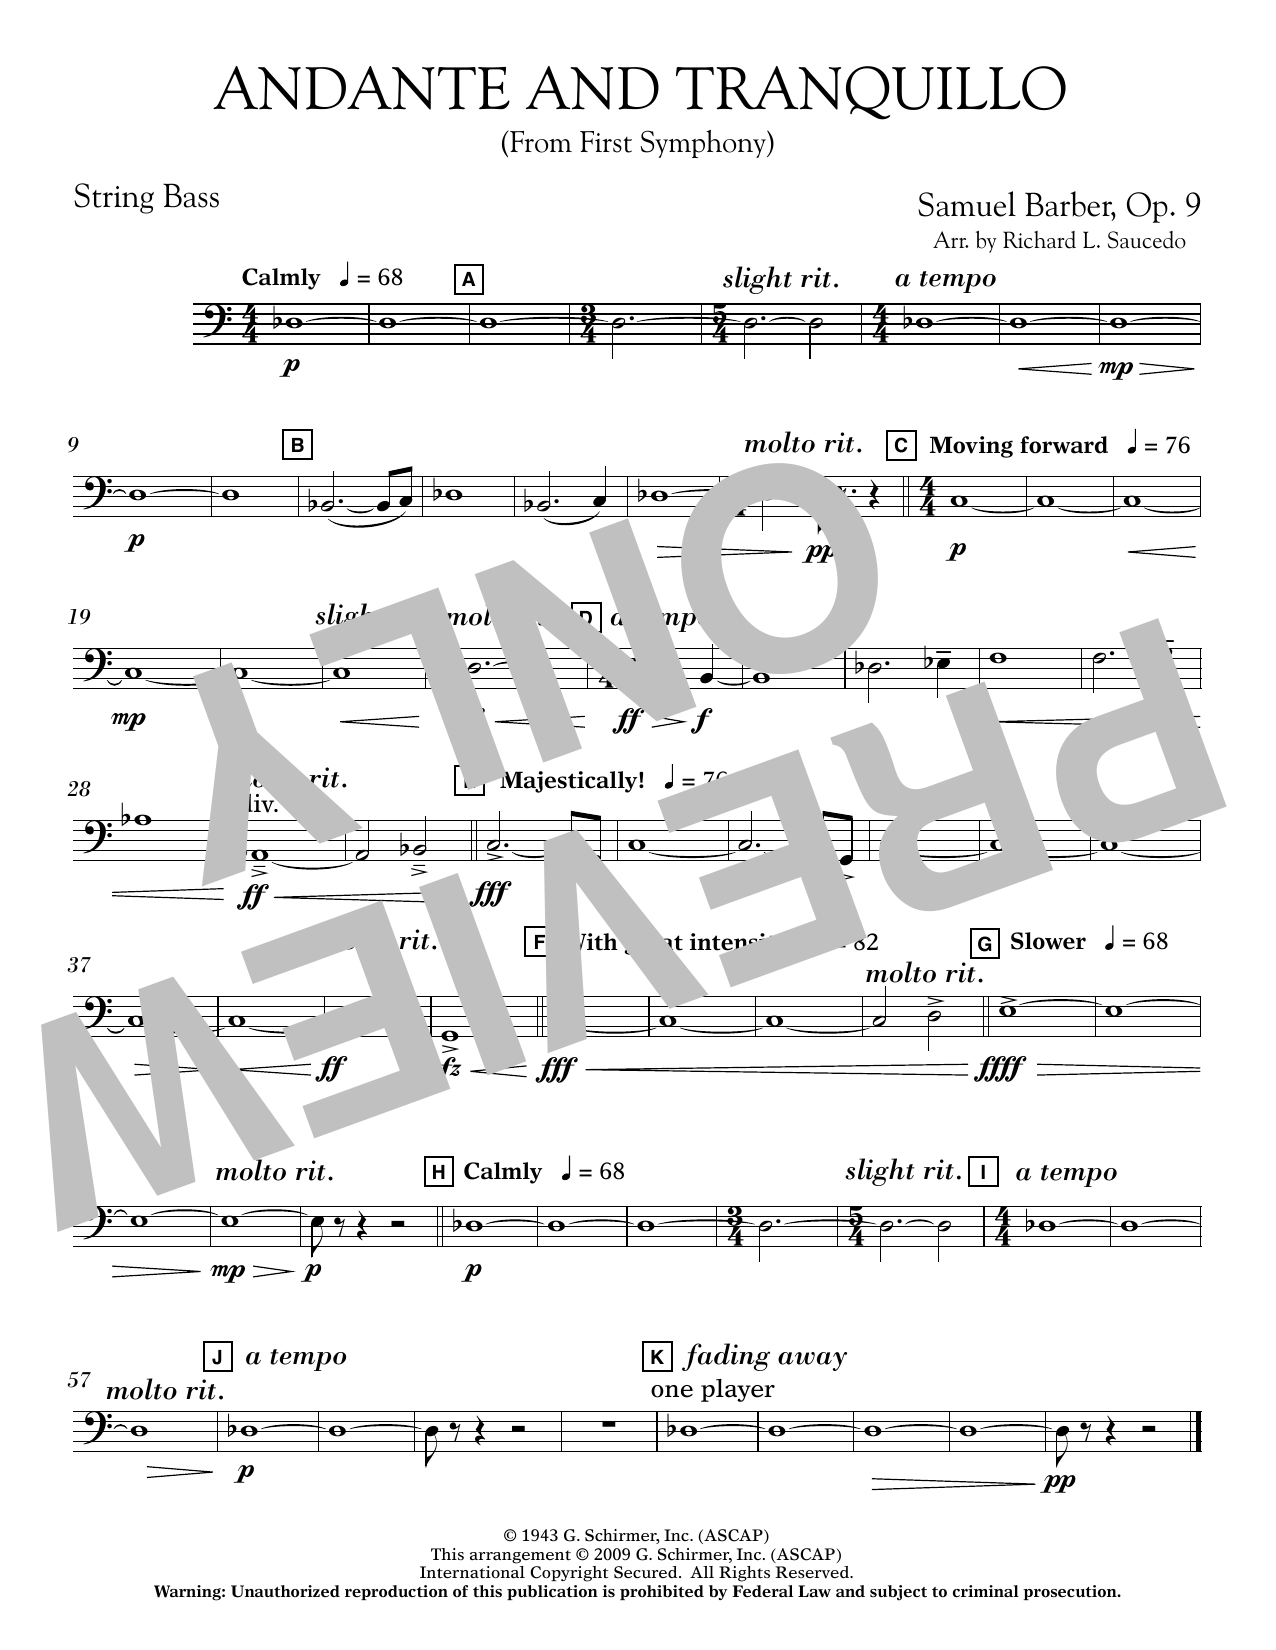 Andante and Tranquillo (from First Symphony) - String Bass Sheet Music